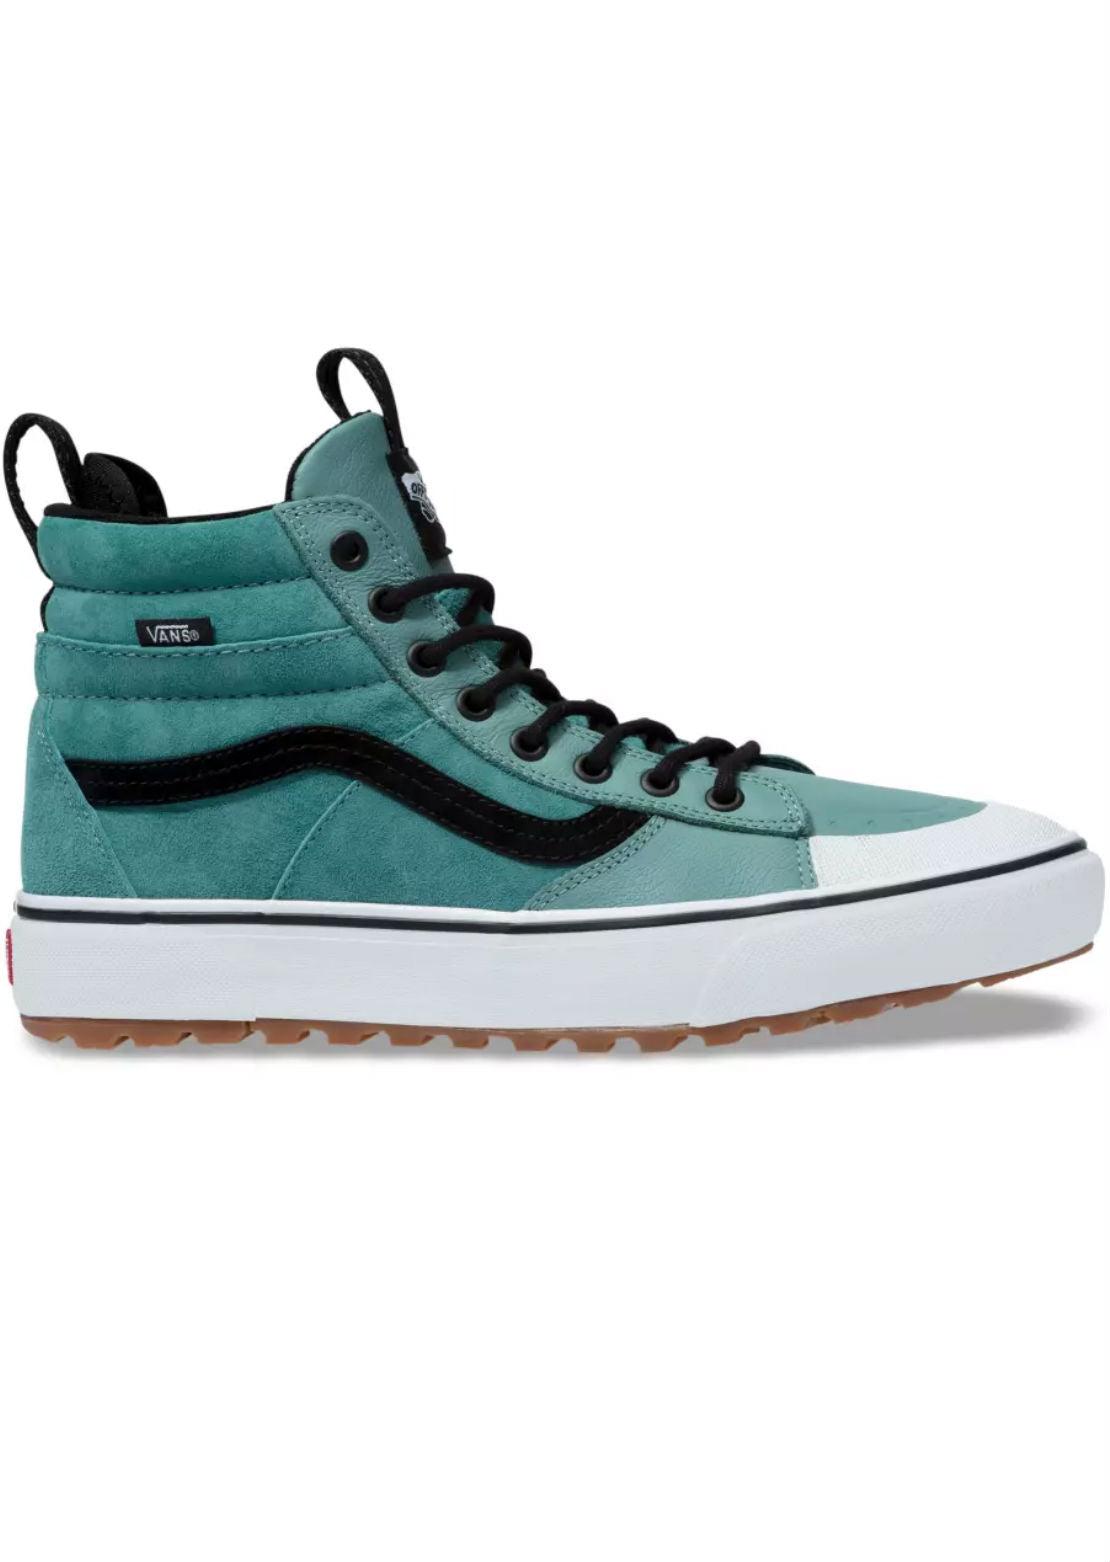 Vans Women's Sk8-Hi MTE 2.0 DX Shoes